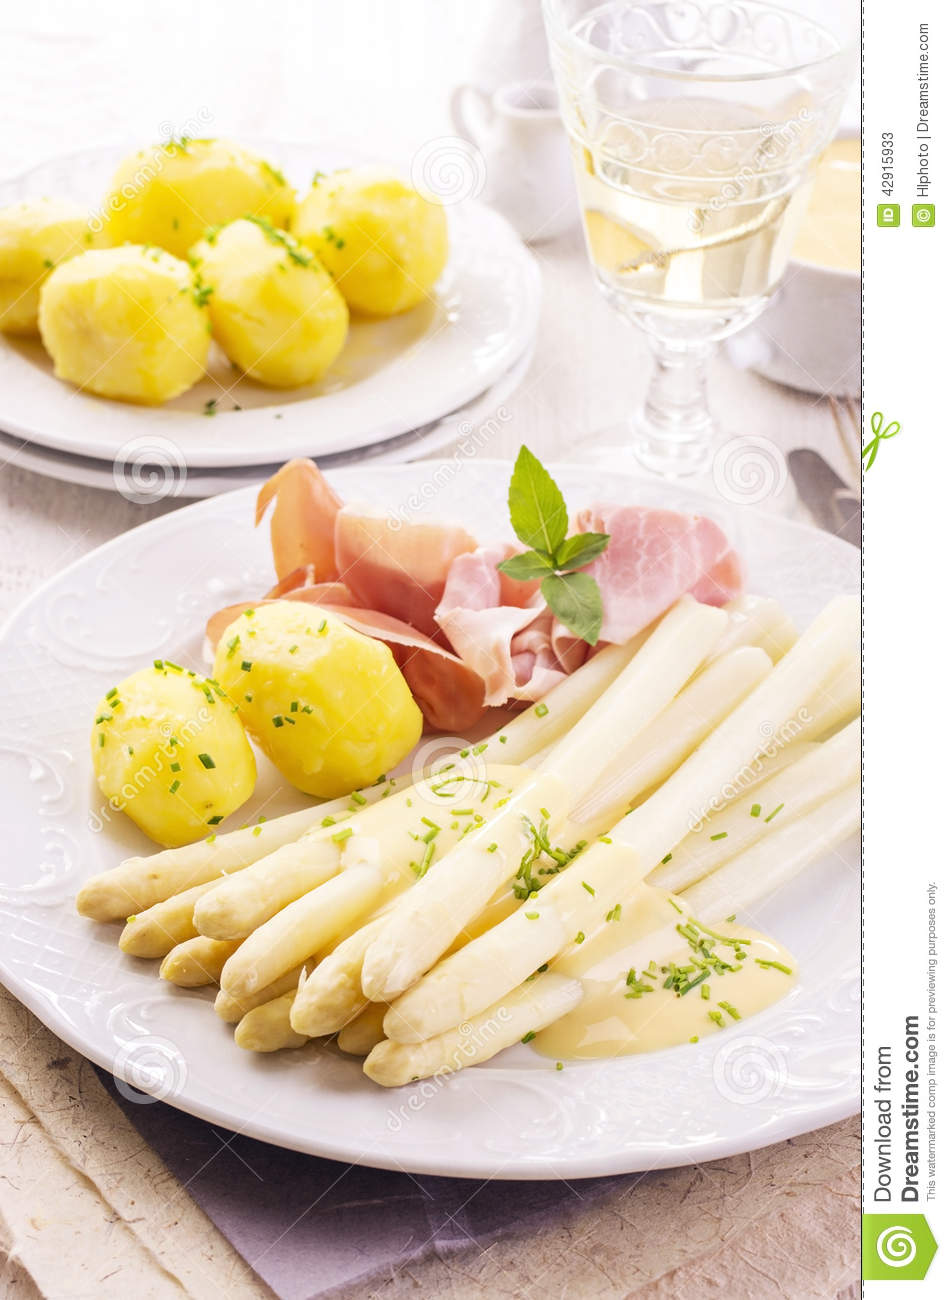 asperge avec du jambon et des pommes de terre photo stock image 42915933. Black Bedroom Furniture Sets. Home Design Ideas